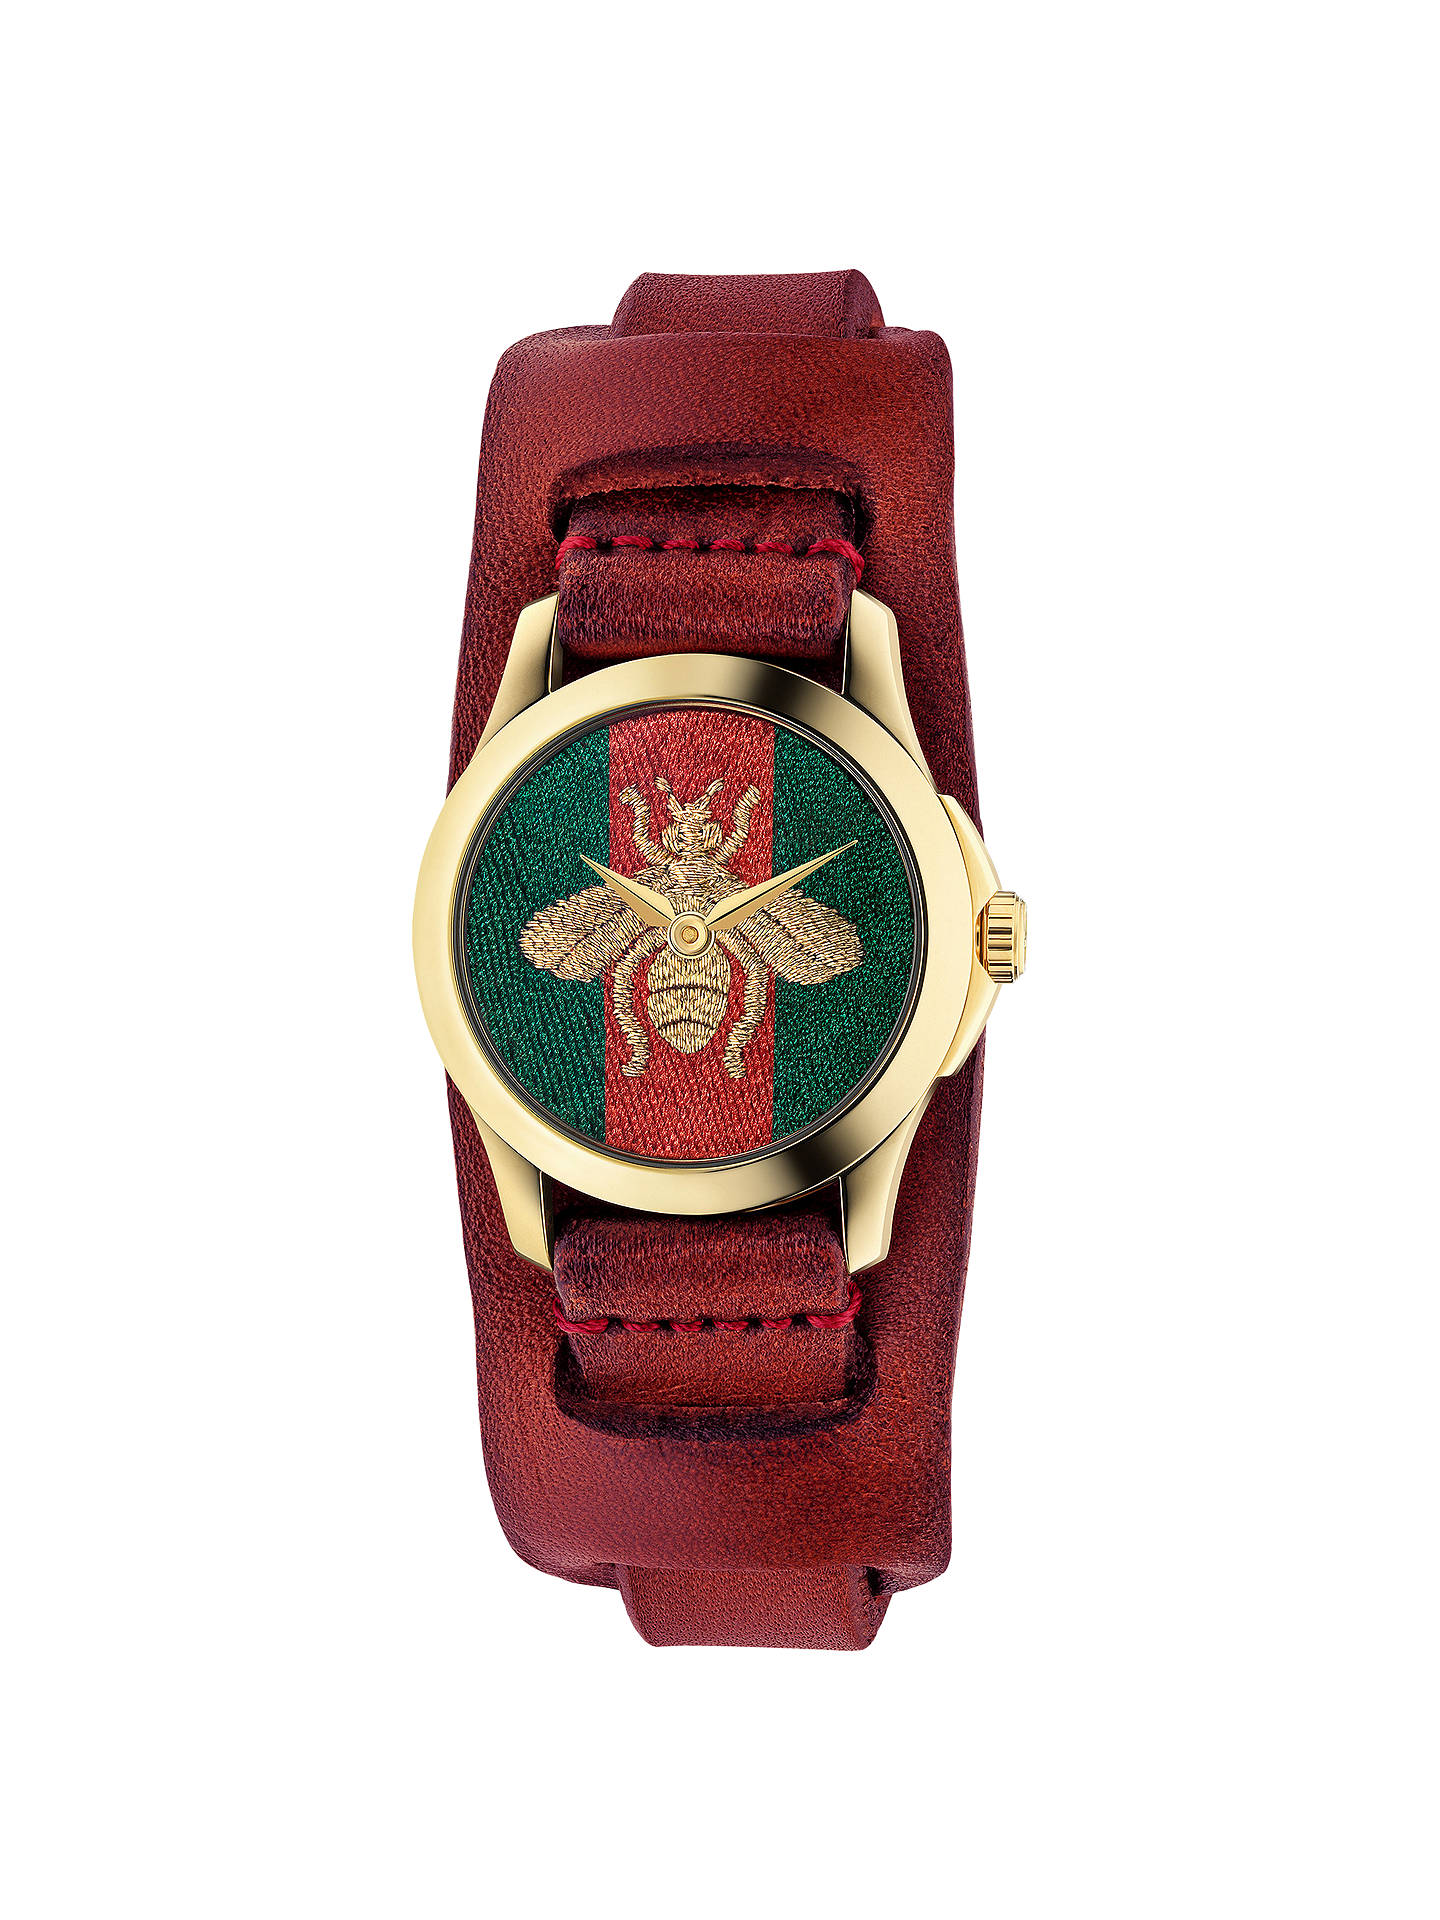 4257f0ebe Buy Gucci YA126546 Women's Le Marché Des Merveilles Leather Strap Watch,  Red/Multi Online ...